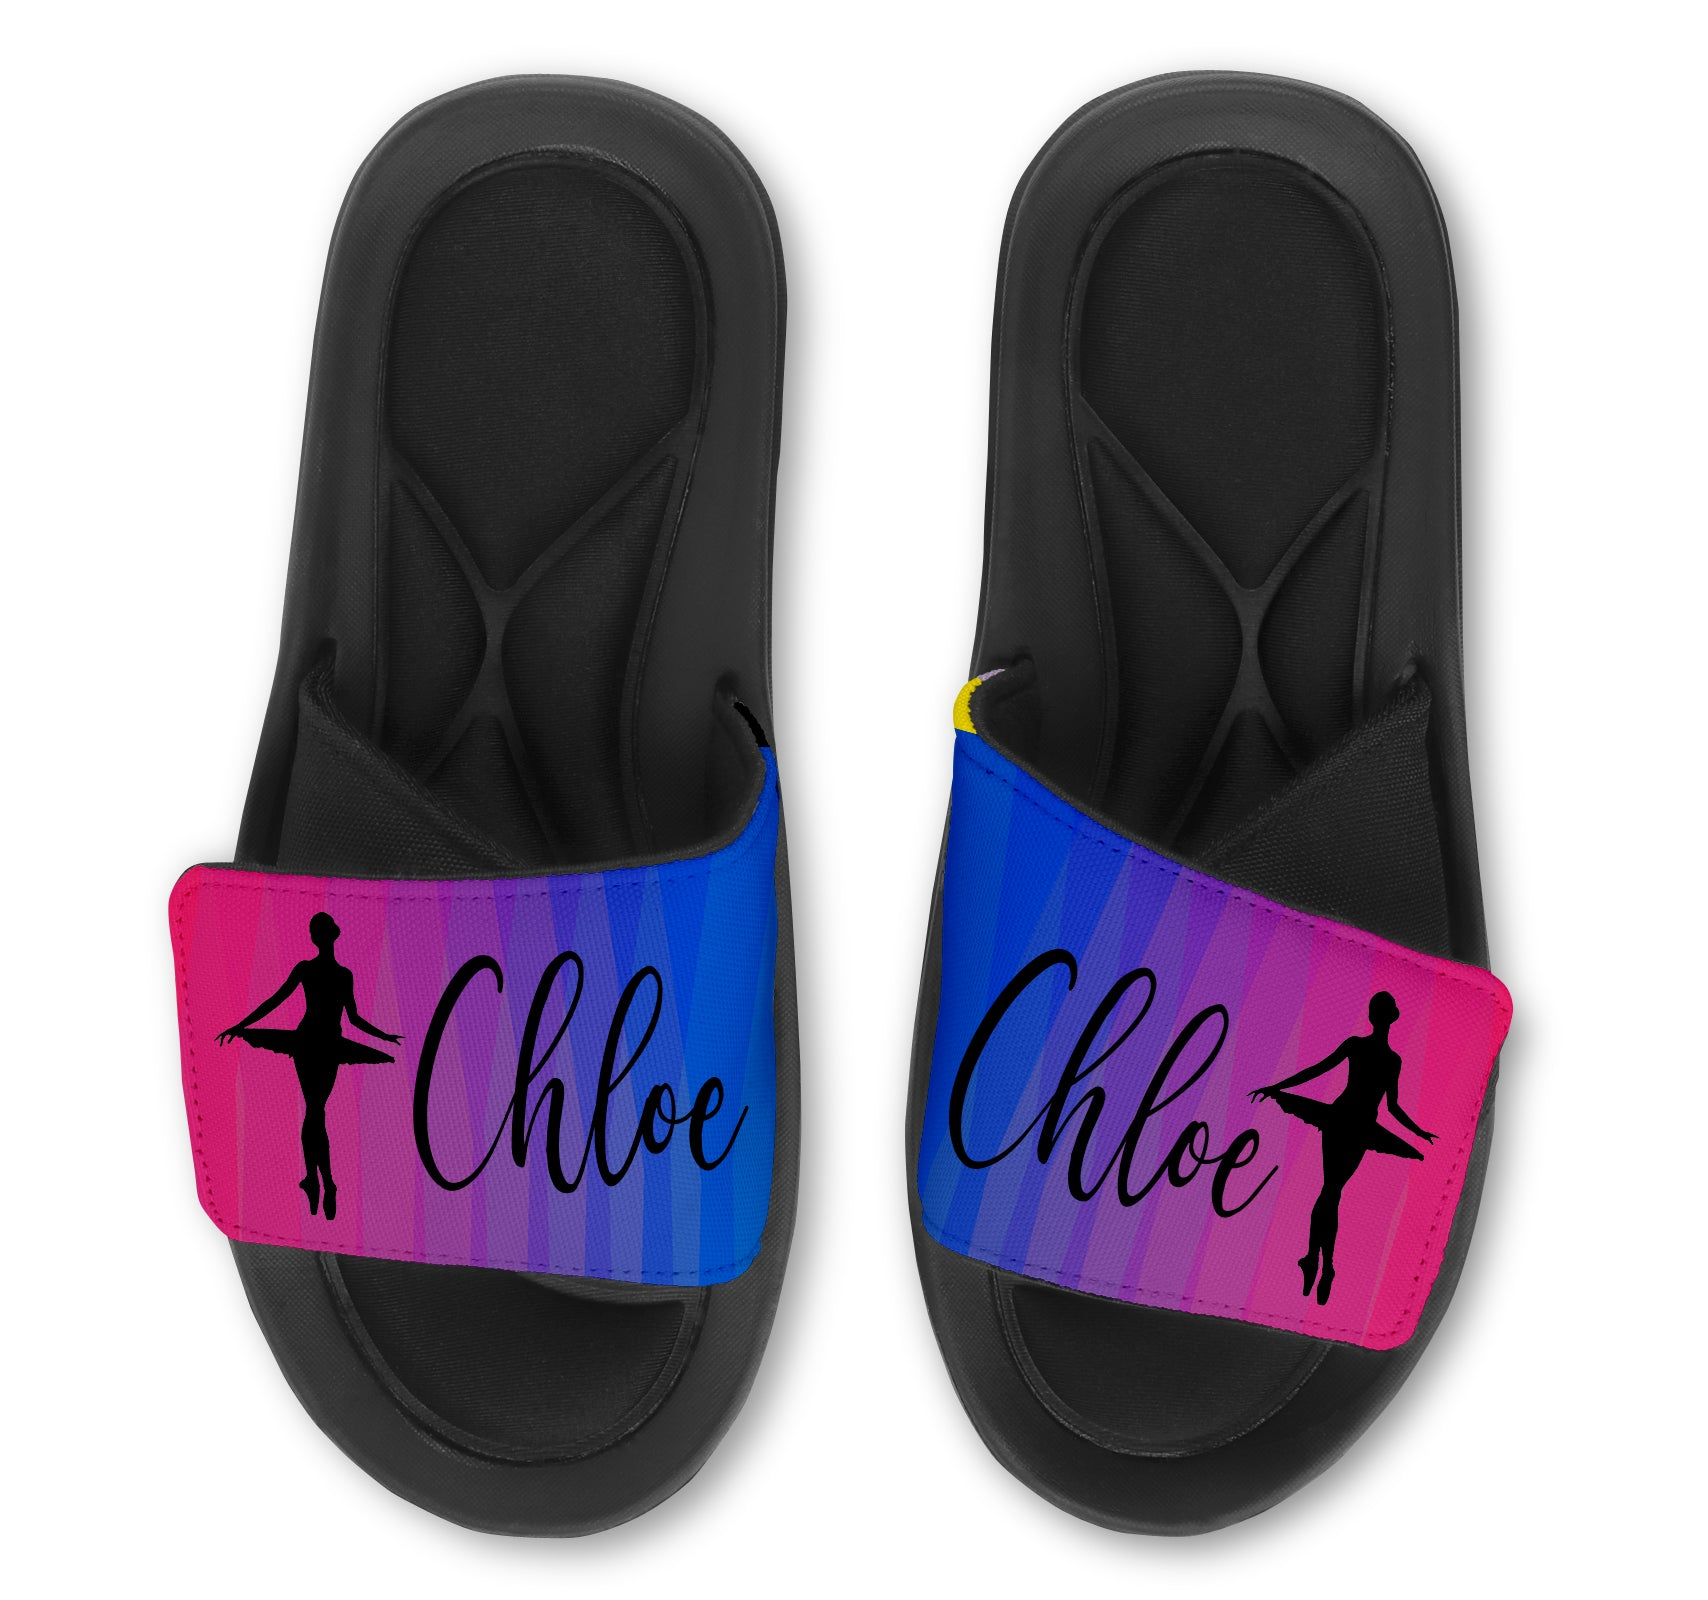 BALLERINA Abstract Custom Slides / Sandals - Choose your Background!